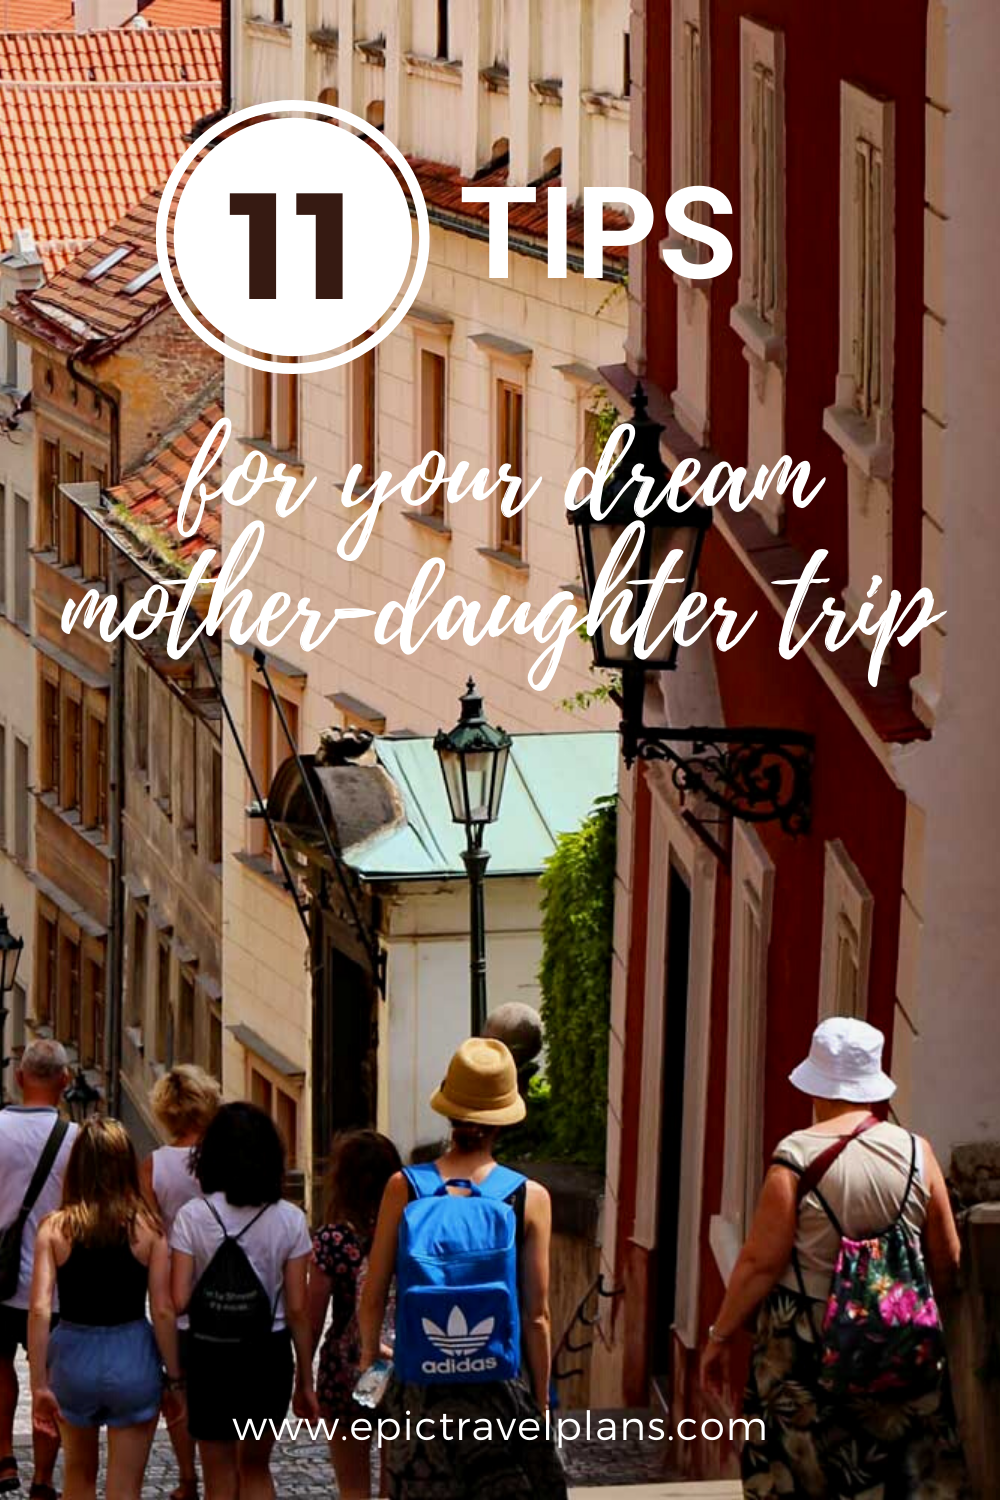 Tips for taking your dream mother-daughter trip